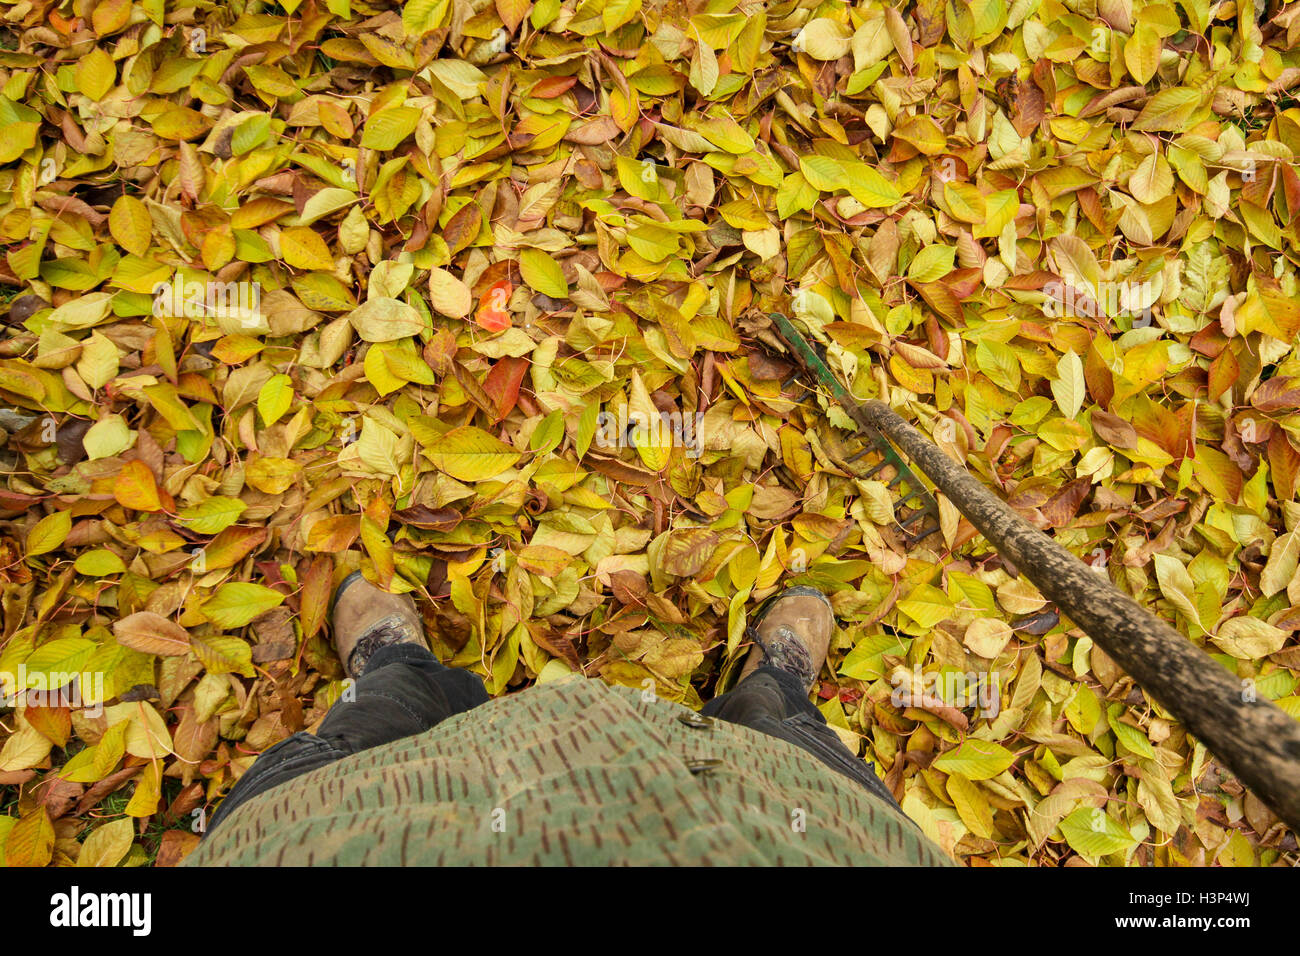 Looking down at forest floor covered in leaves - Stock Image